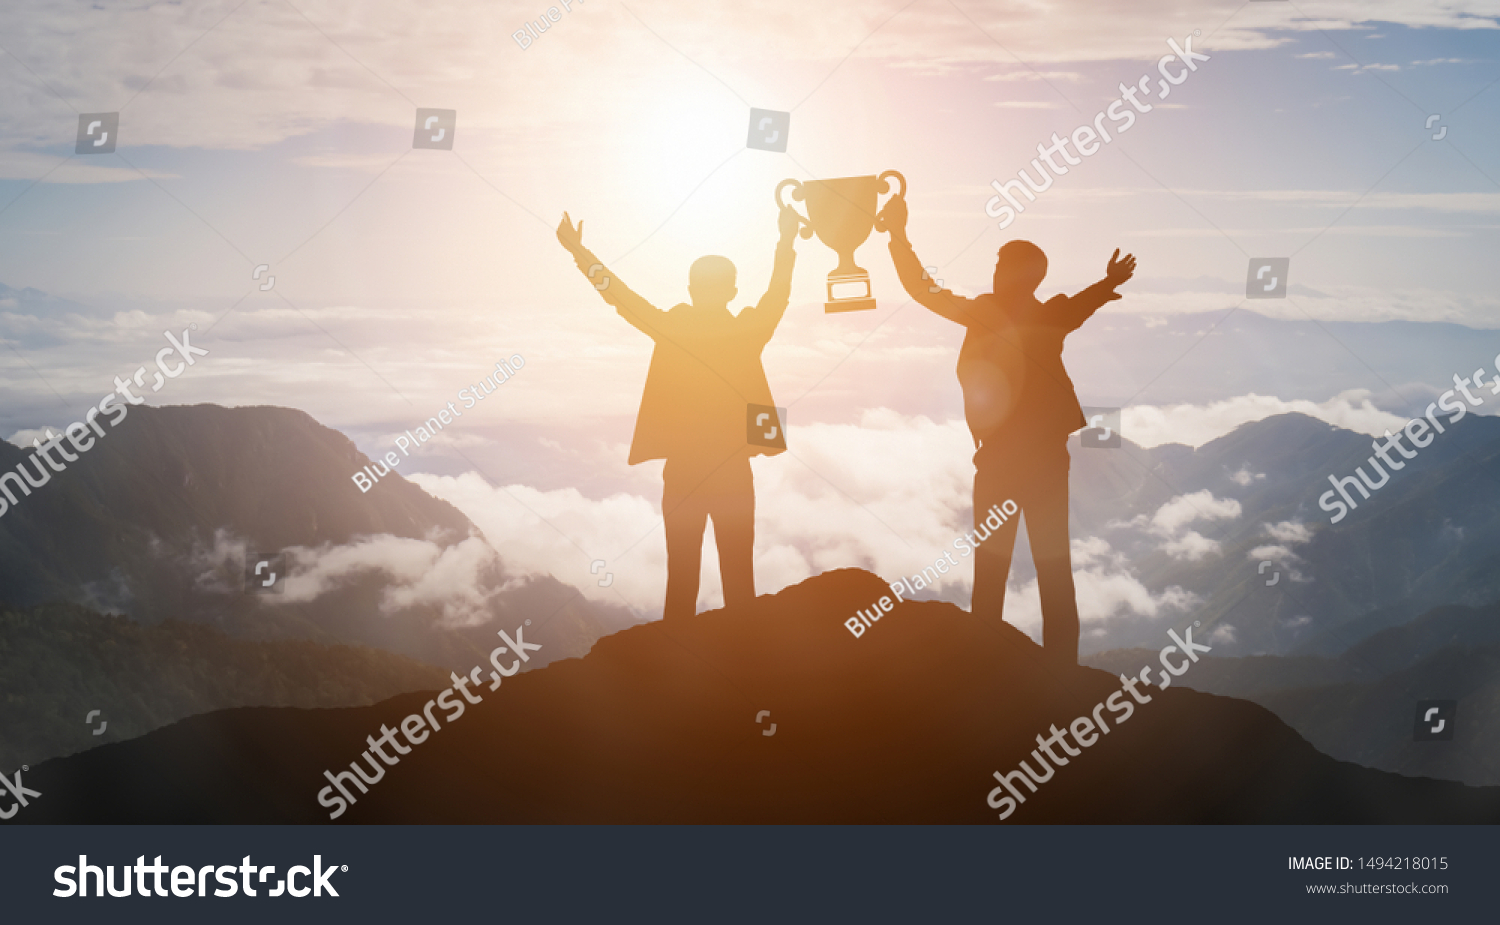 Achievement and Business Goal Success Concept - Creative business people with icon graphic interface showing employee reward giving for business success achievement. #1494218015